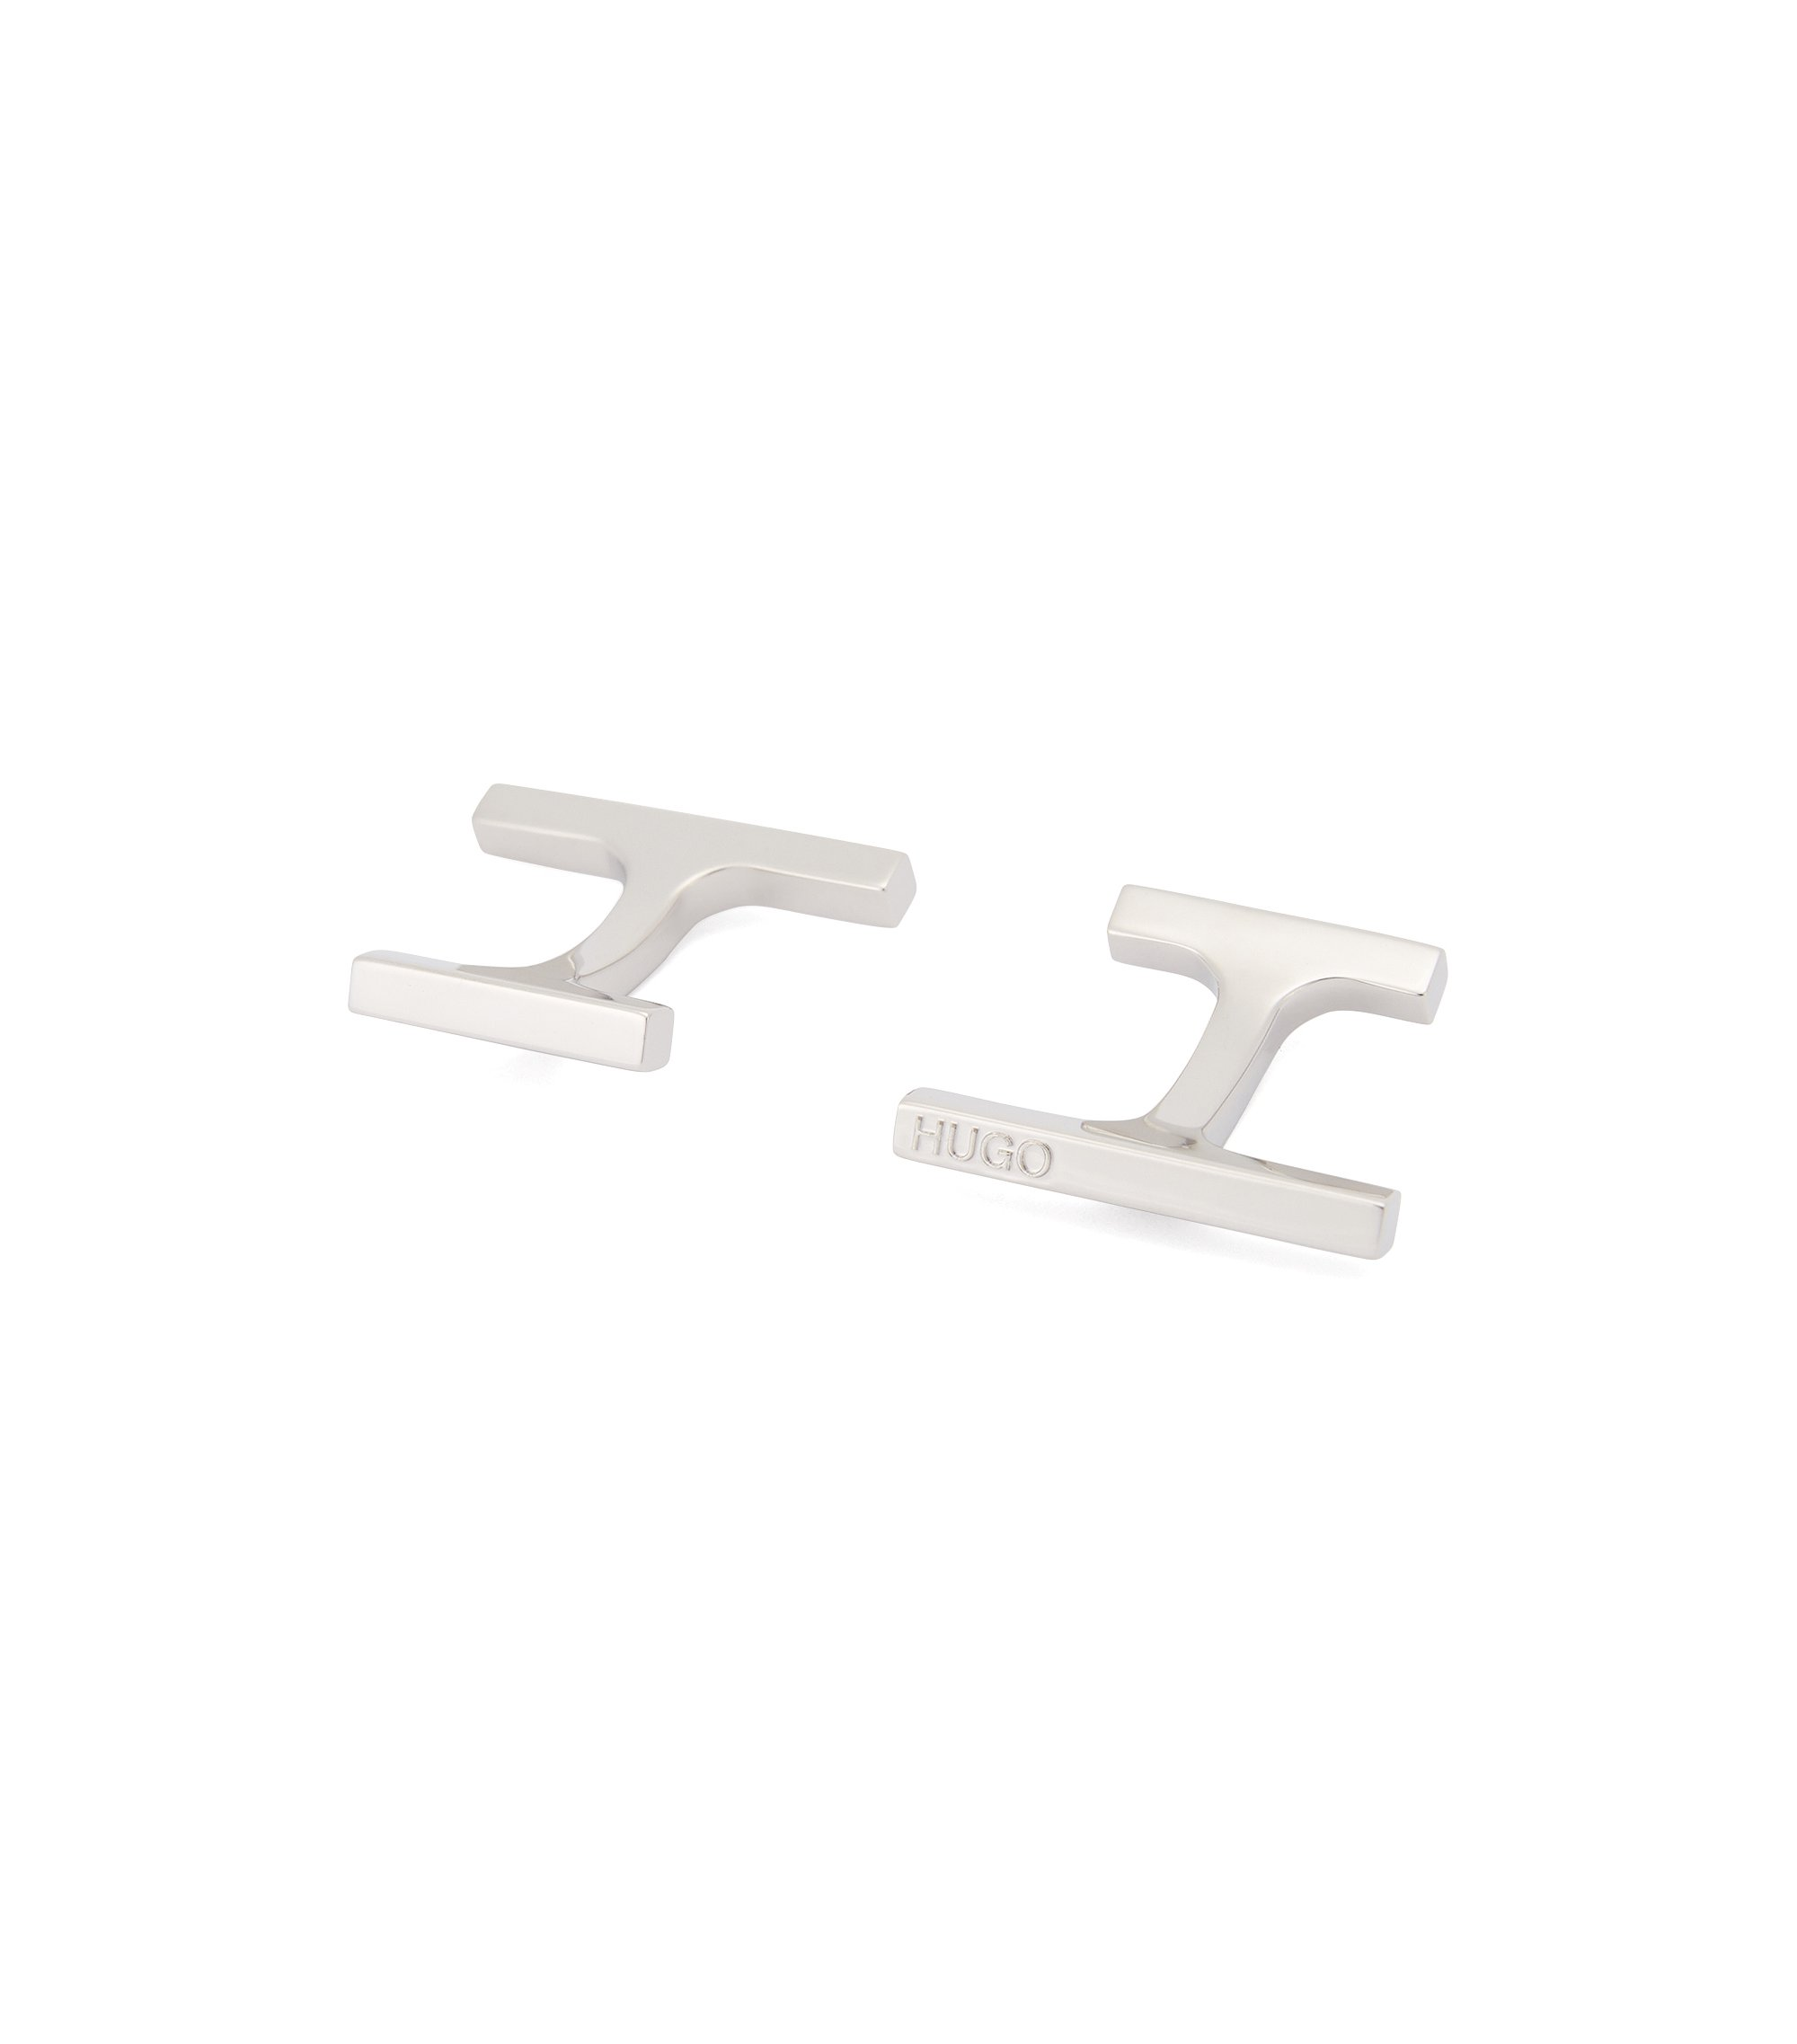 Polished bar cufflinks with fix fastenings, Silver